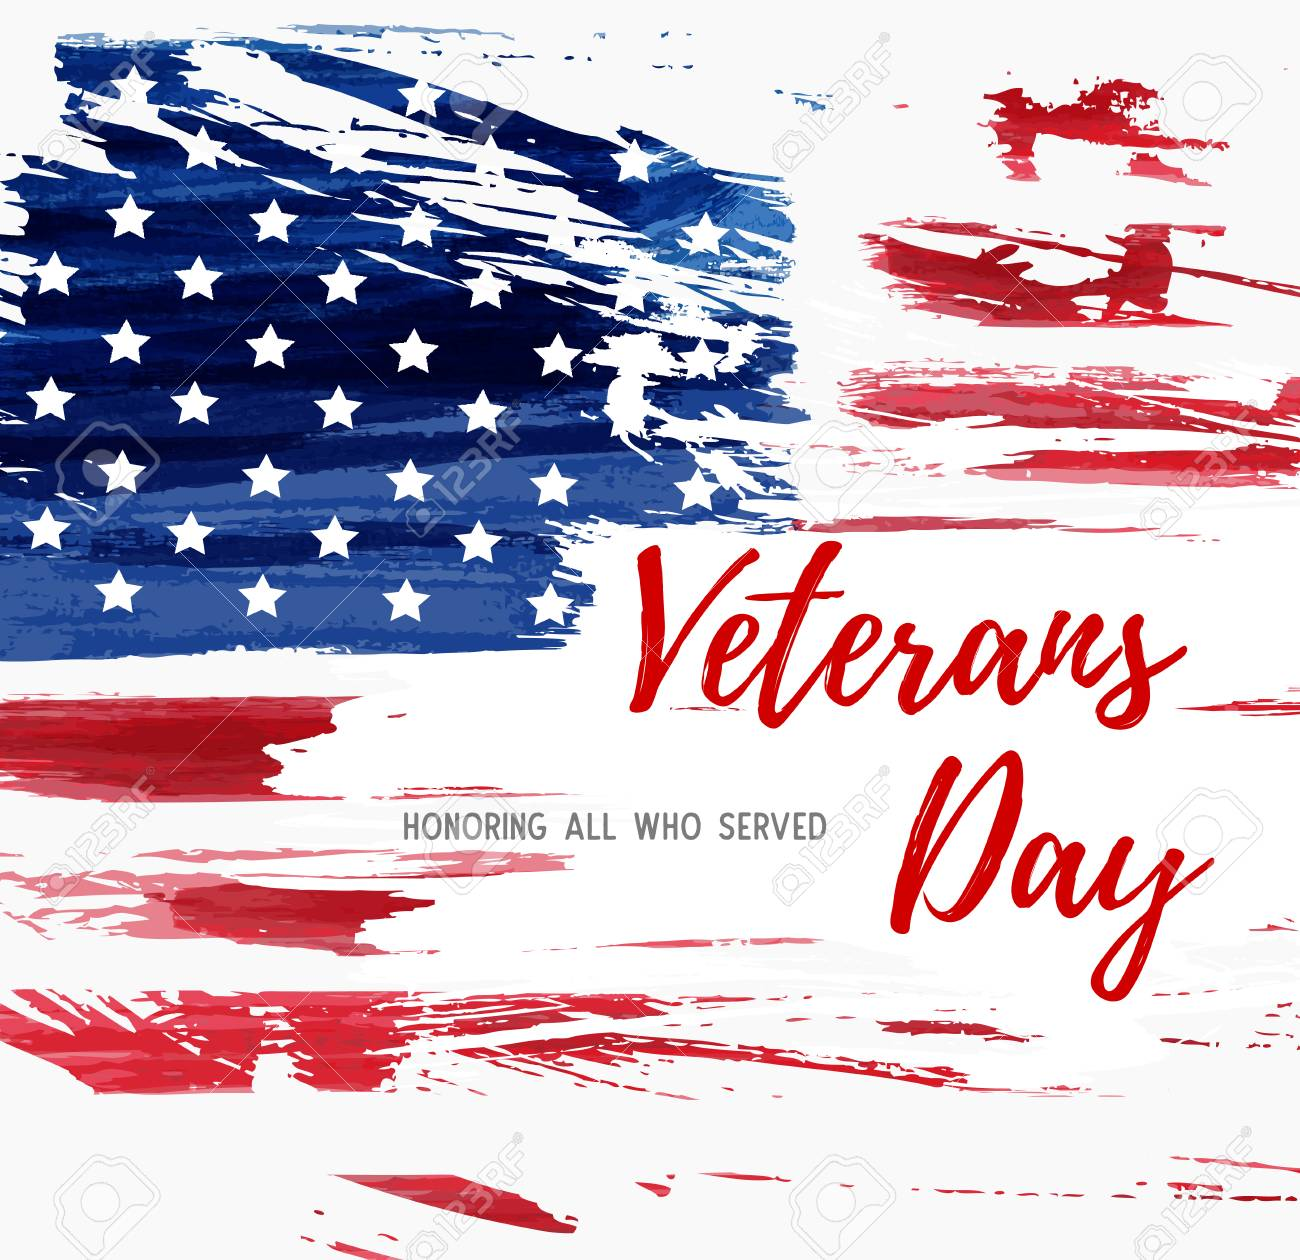 usa veterans day background abstract grunge brushed flag with